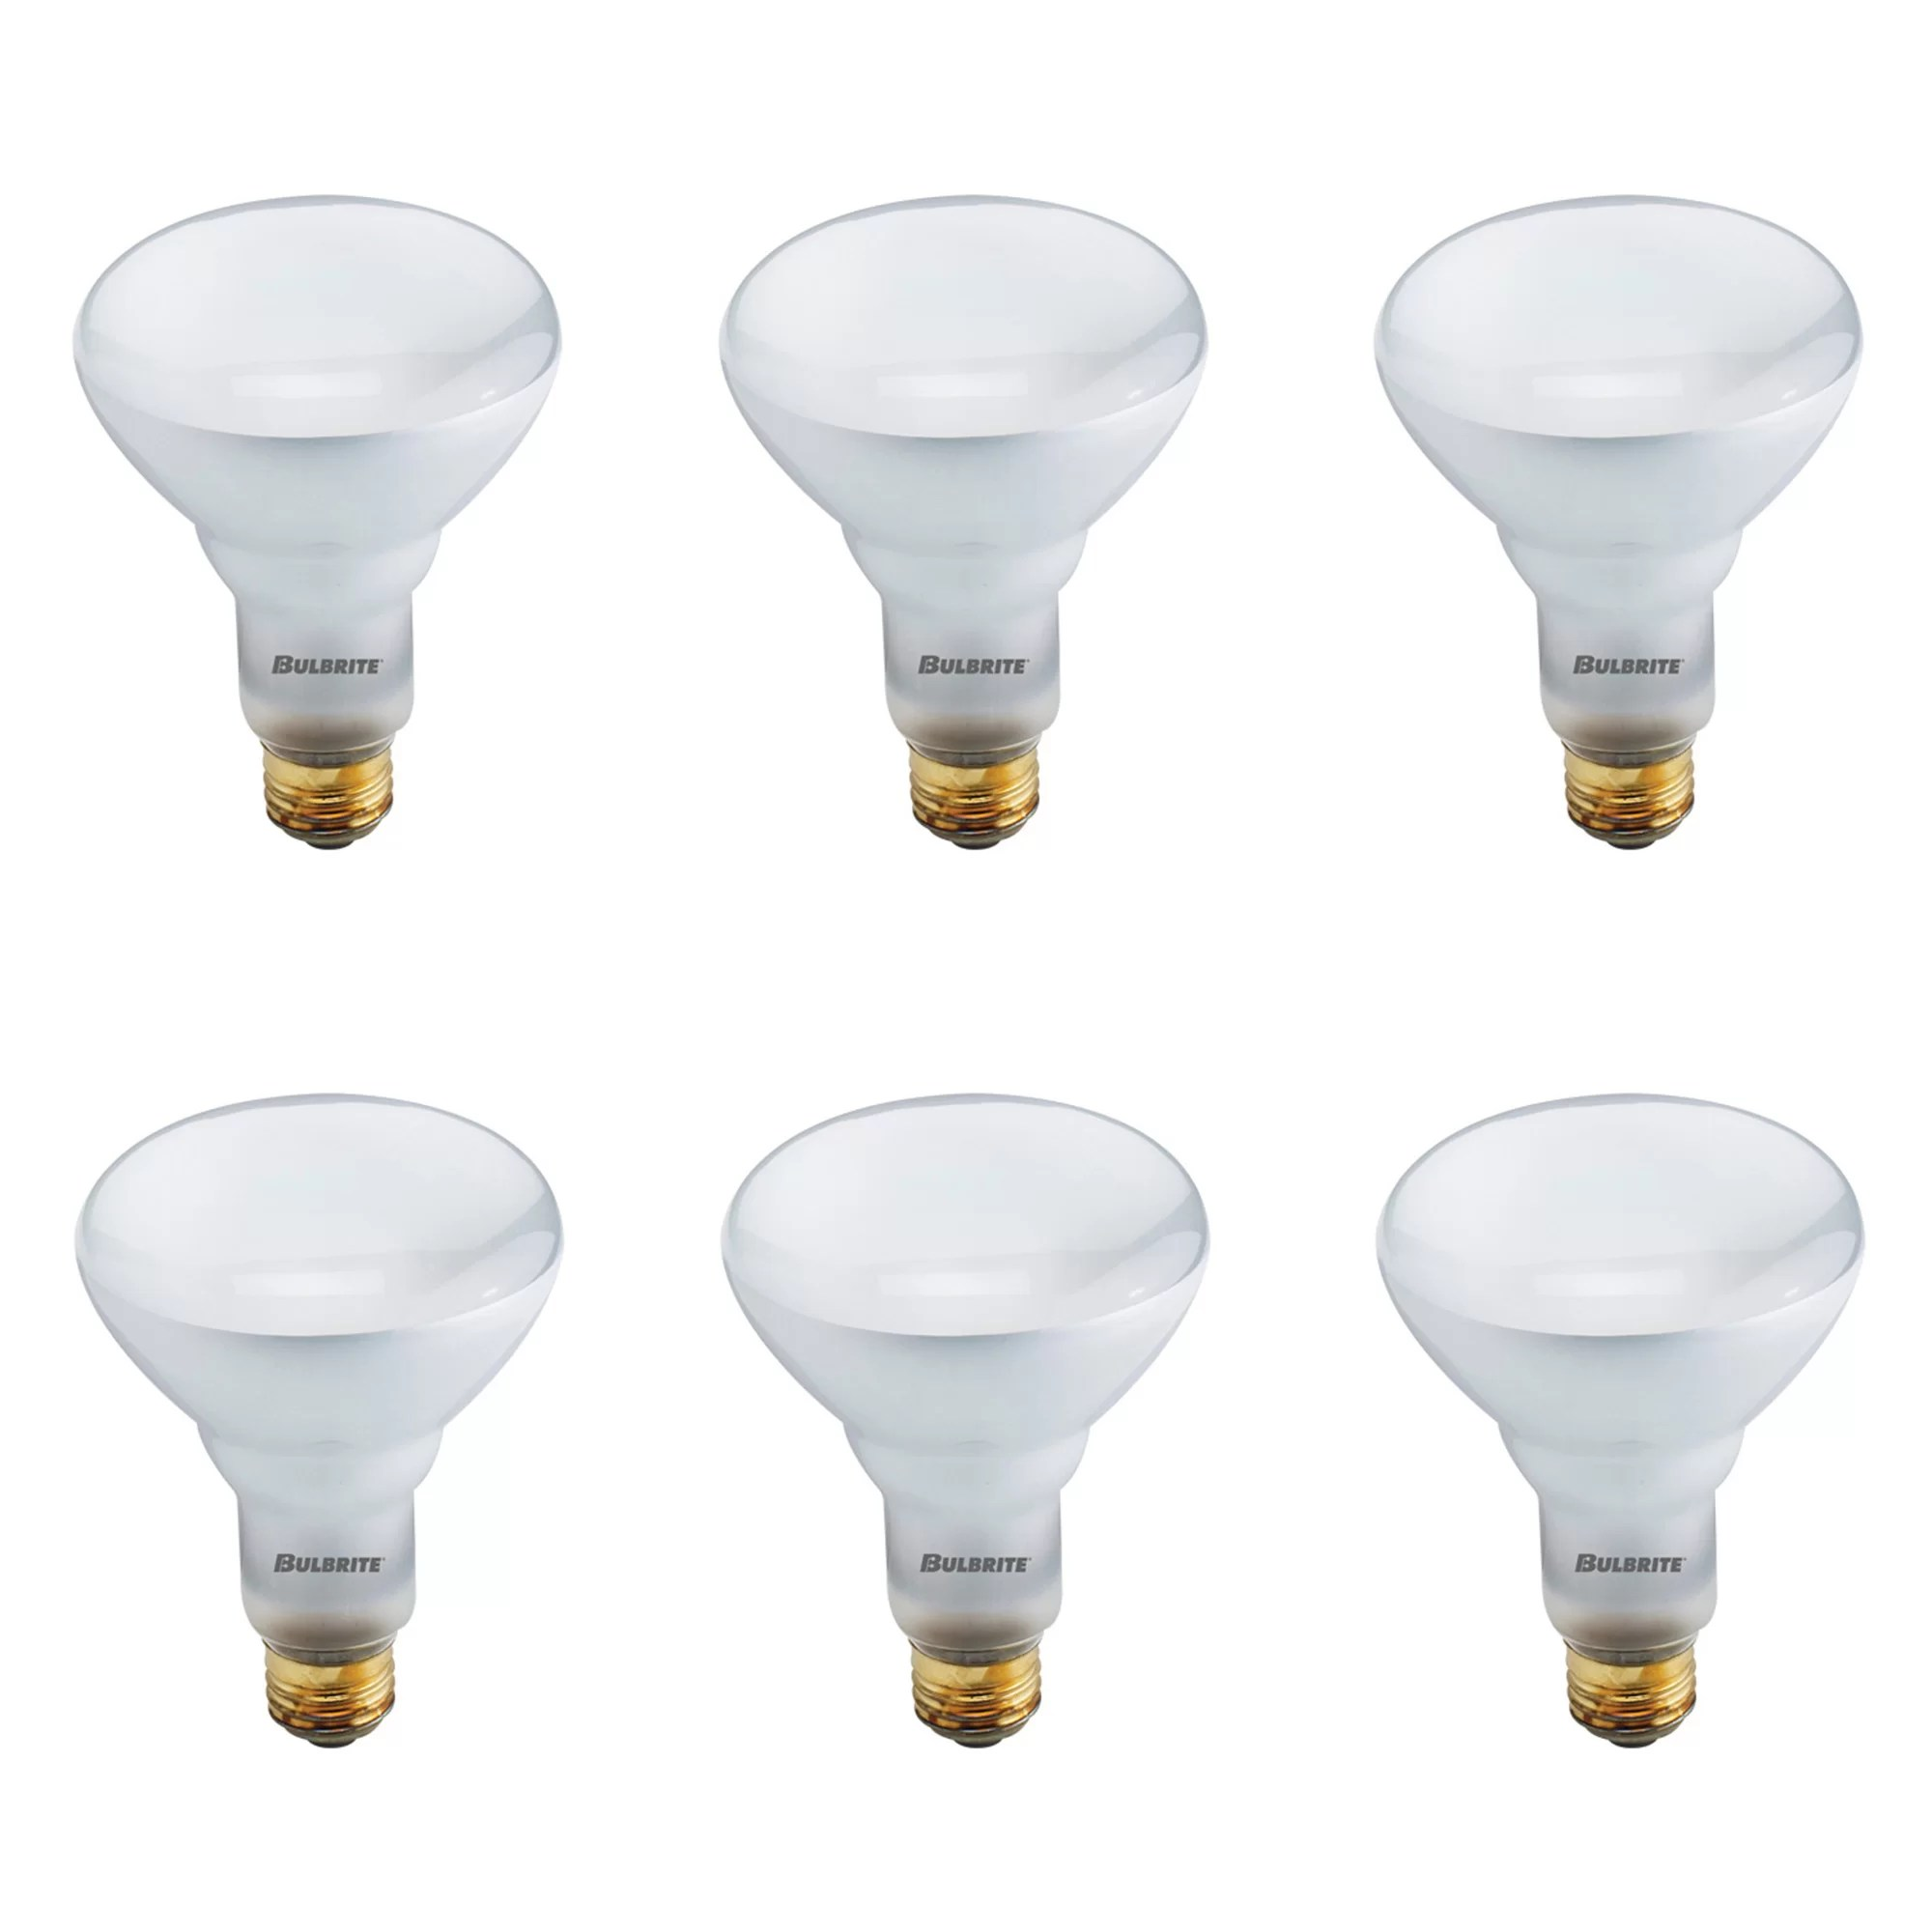 Halogen Spotlight Bulbs 65w E26 Dimmable Halogen Spotlight Light Bulb